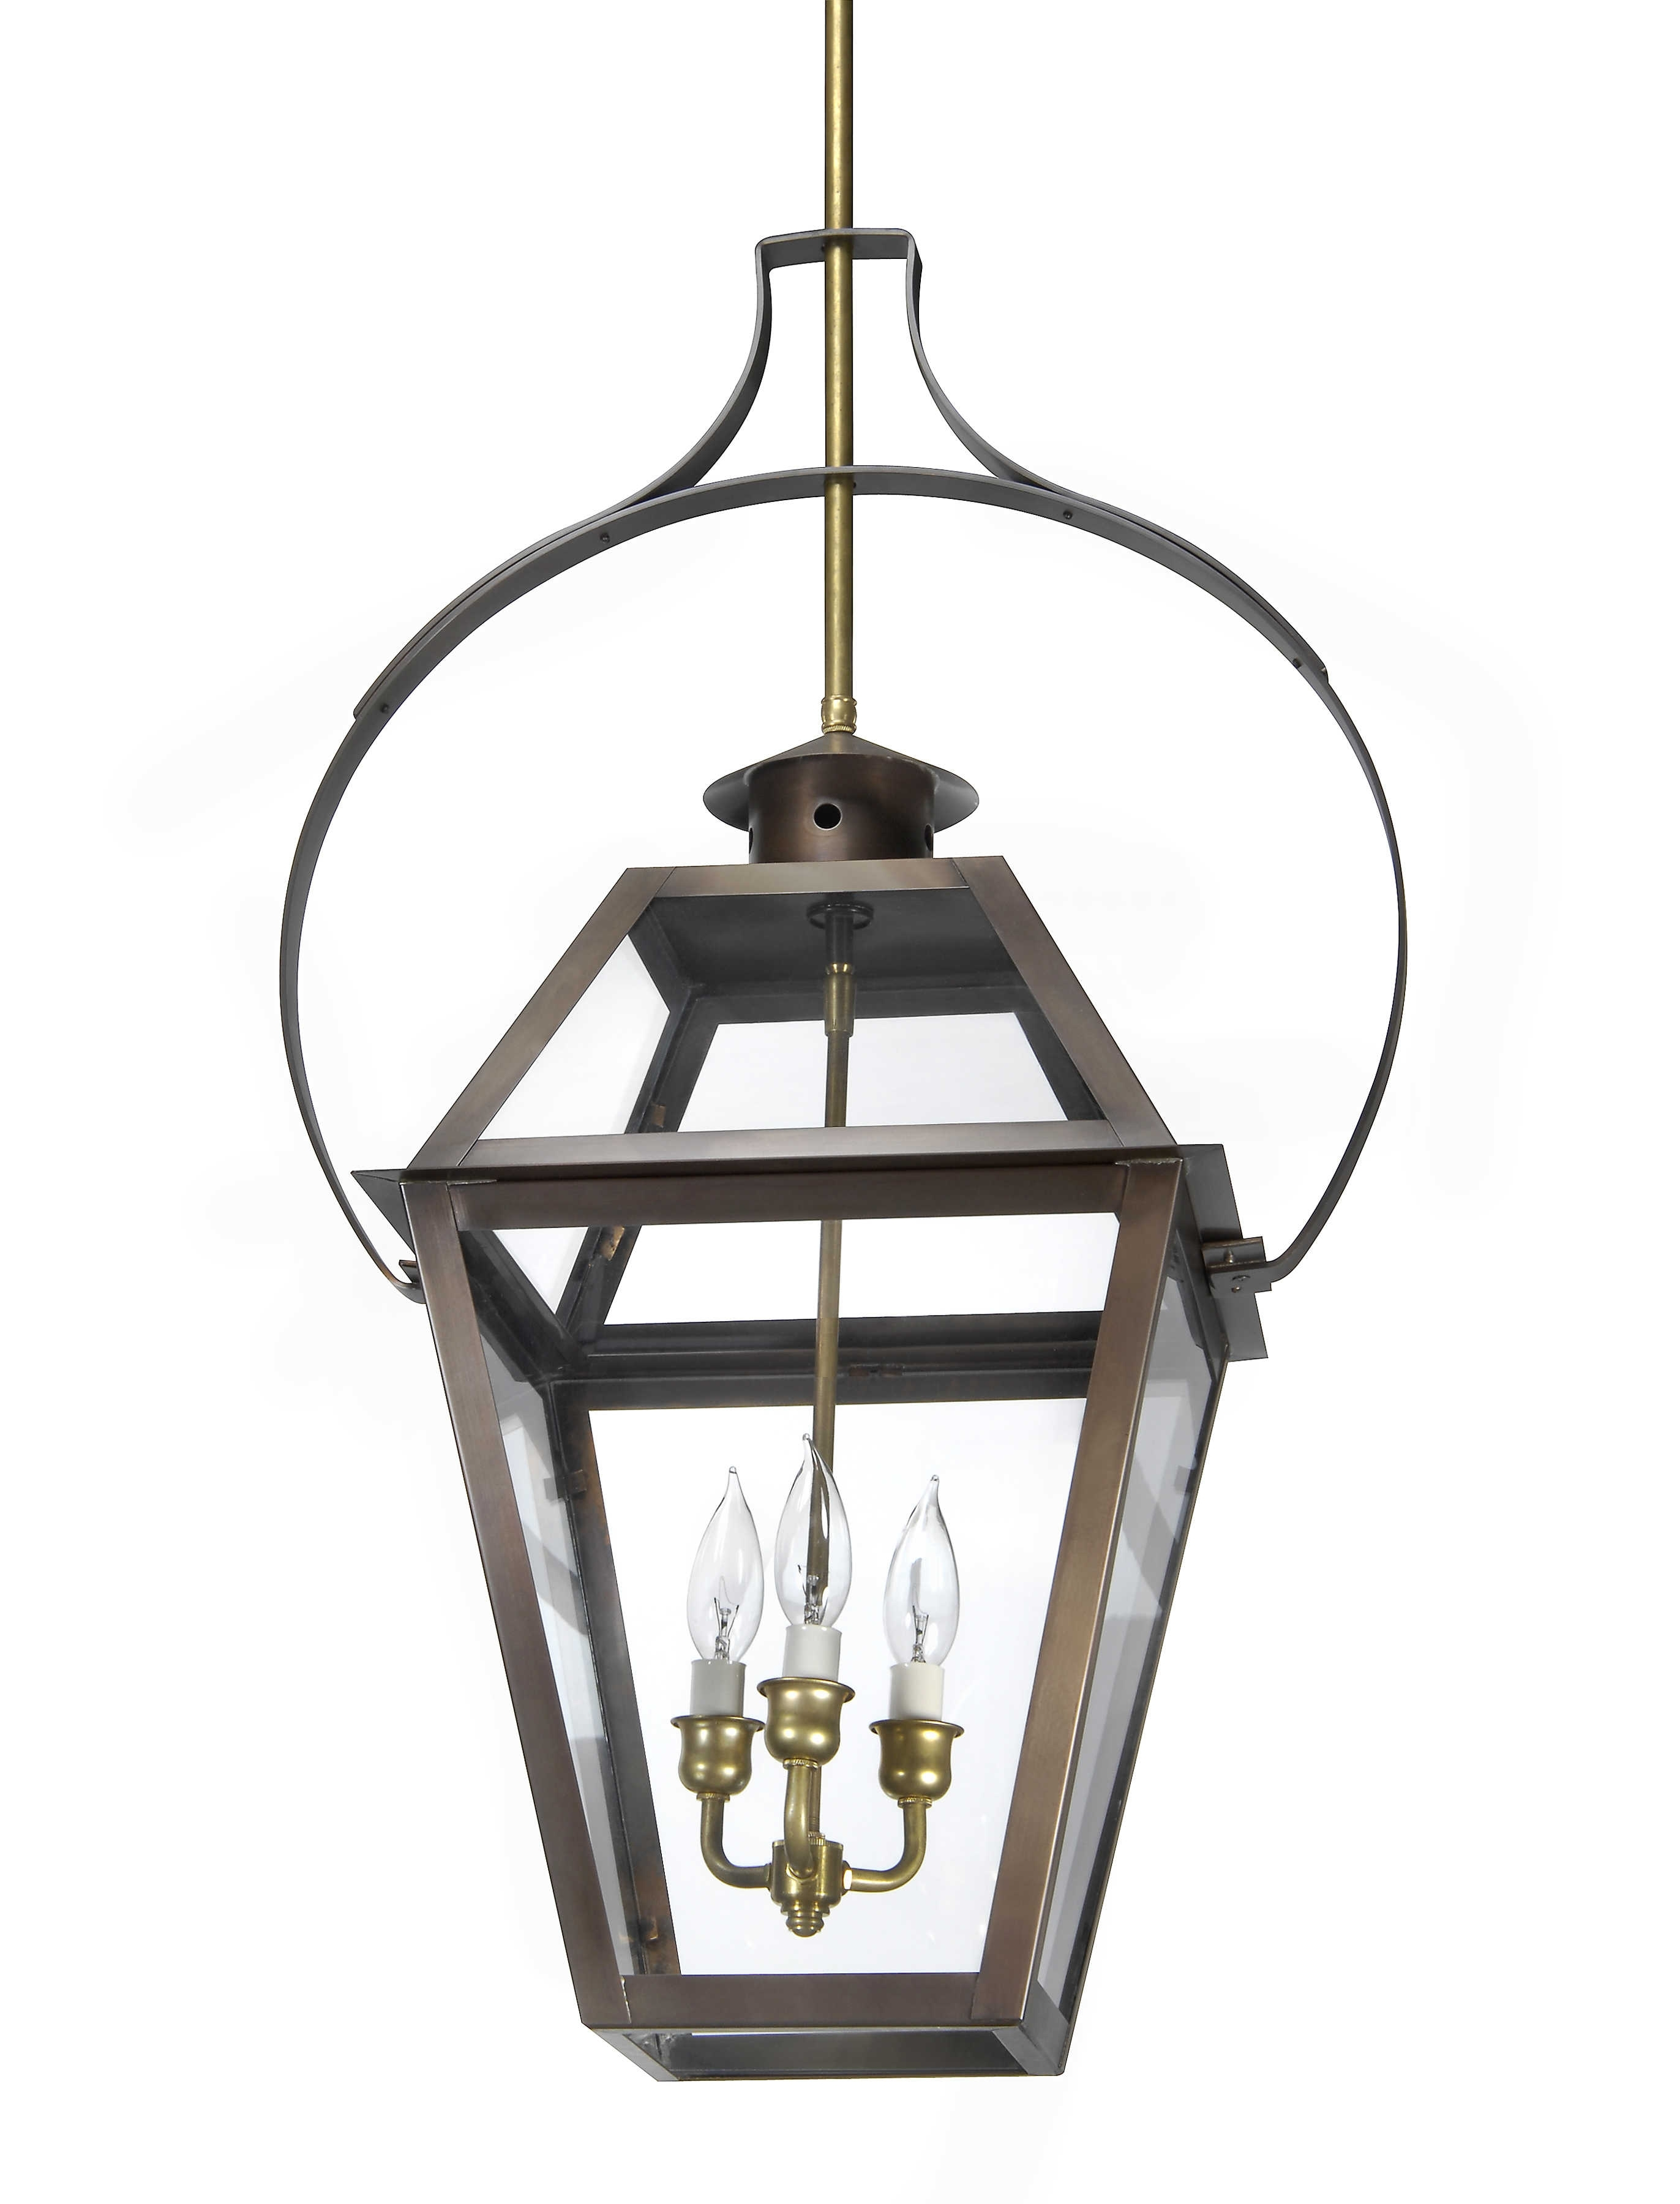 Ch 23 Hanging Yoke Light– Lantern & Scroll Within Favorite Copper Outdoor Electric Lanterns (View 5 of 20)